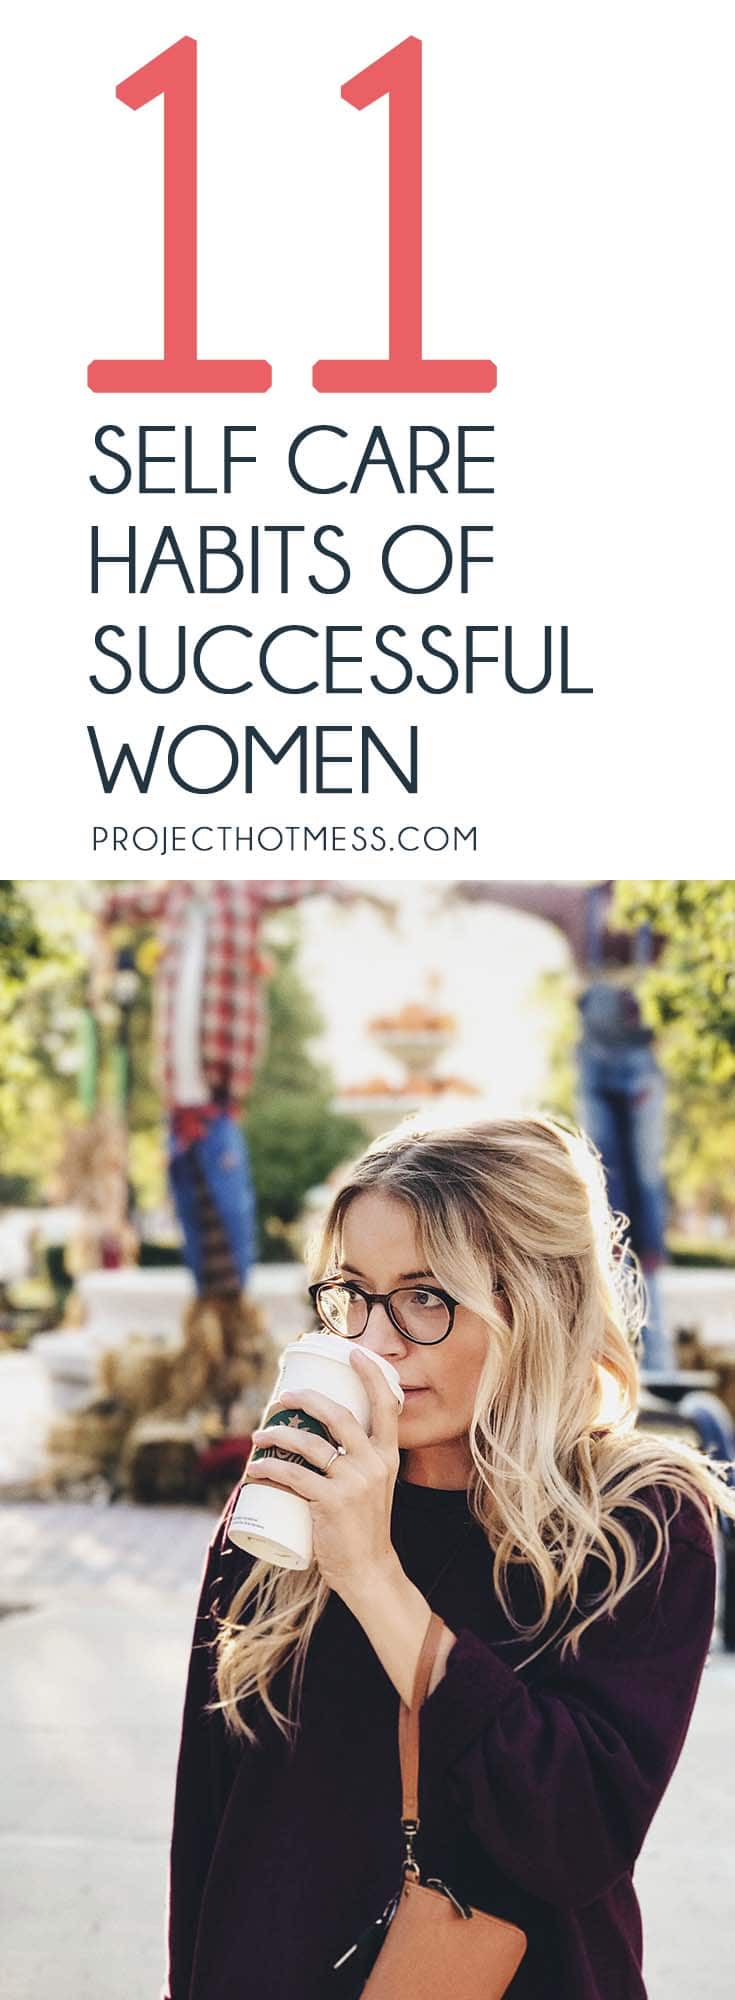 How's that massive to do list going? Adding these self care habits of successful women can actually free up more time for you and reduce your overwhelm. Sounds too good to be true but when we look after ourselves, and when we make self care a habit, the rest comes a lot easier.